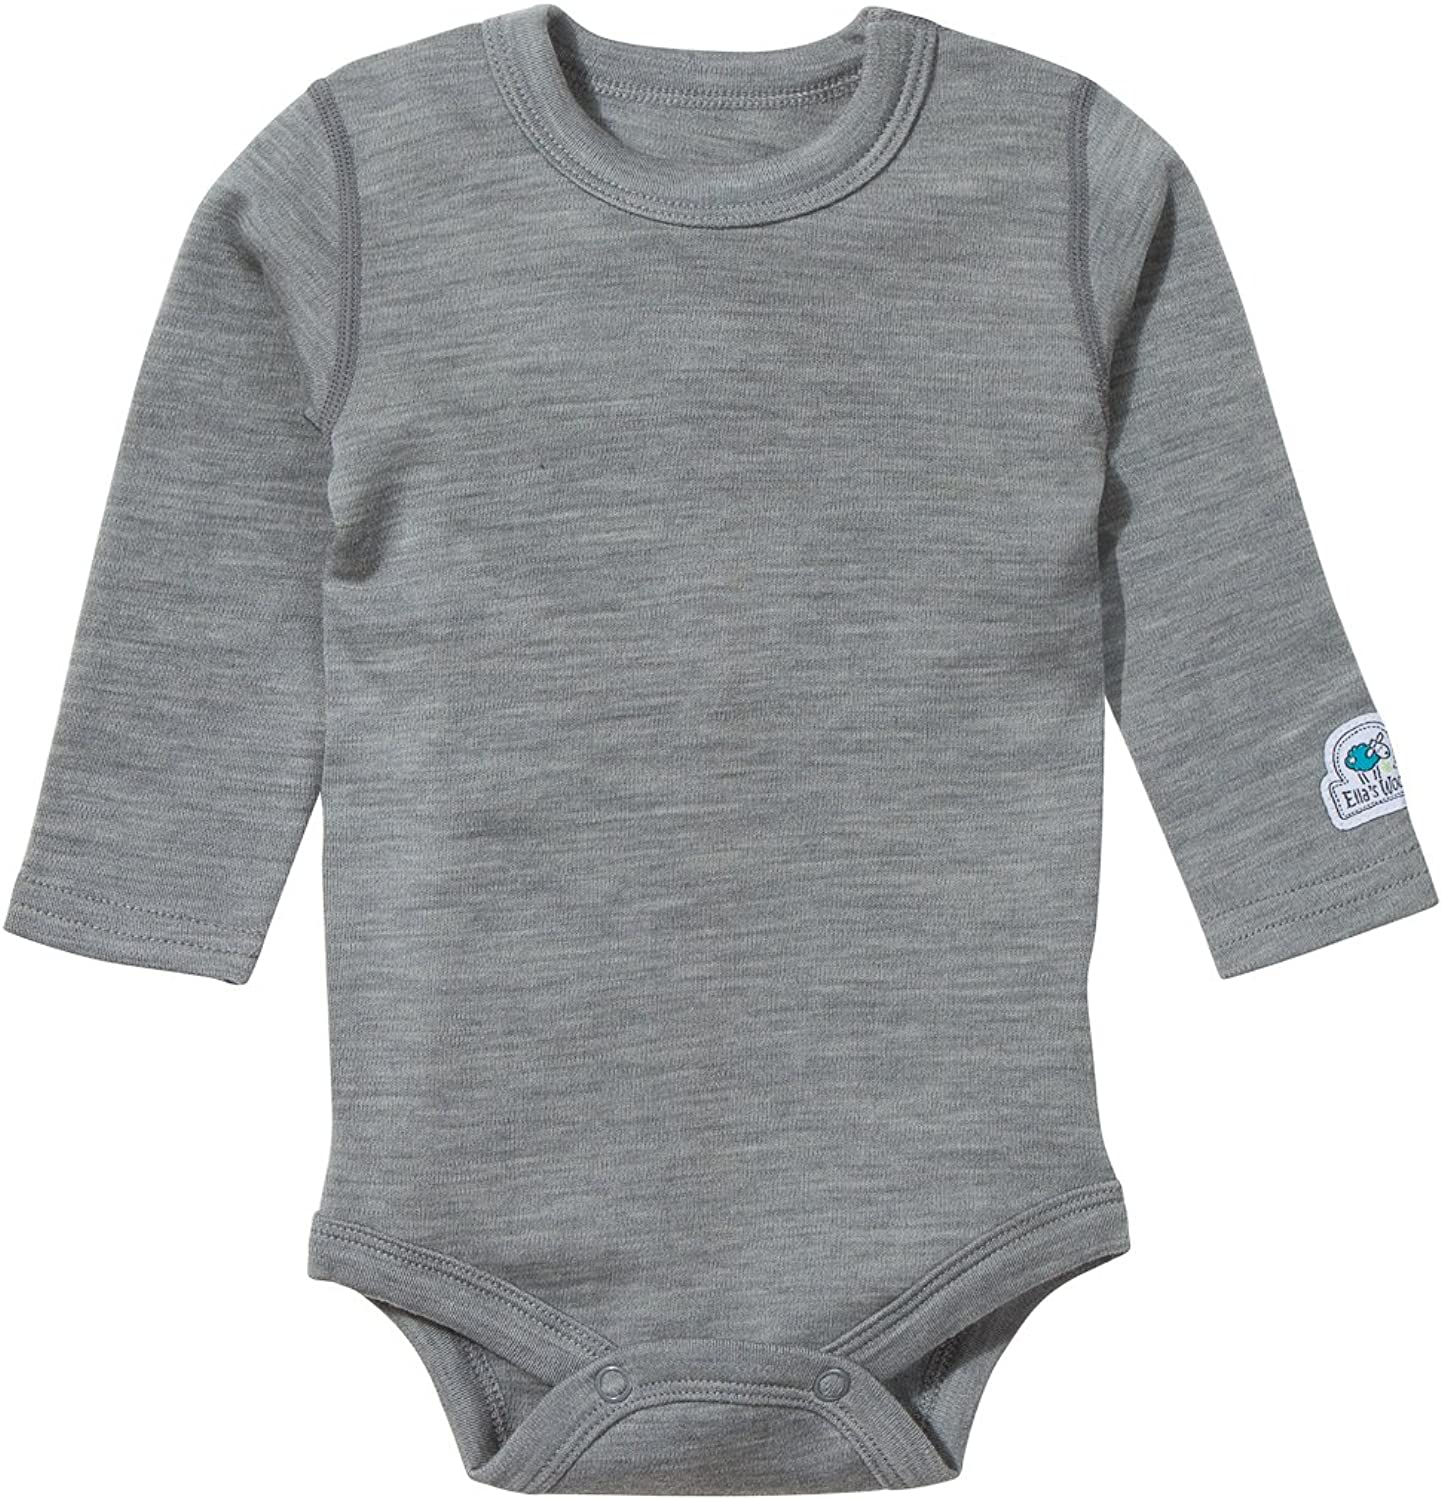 Merino Wool Woolino Long Sleeve Pajama Set 1-5 Years